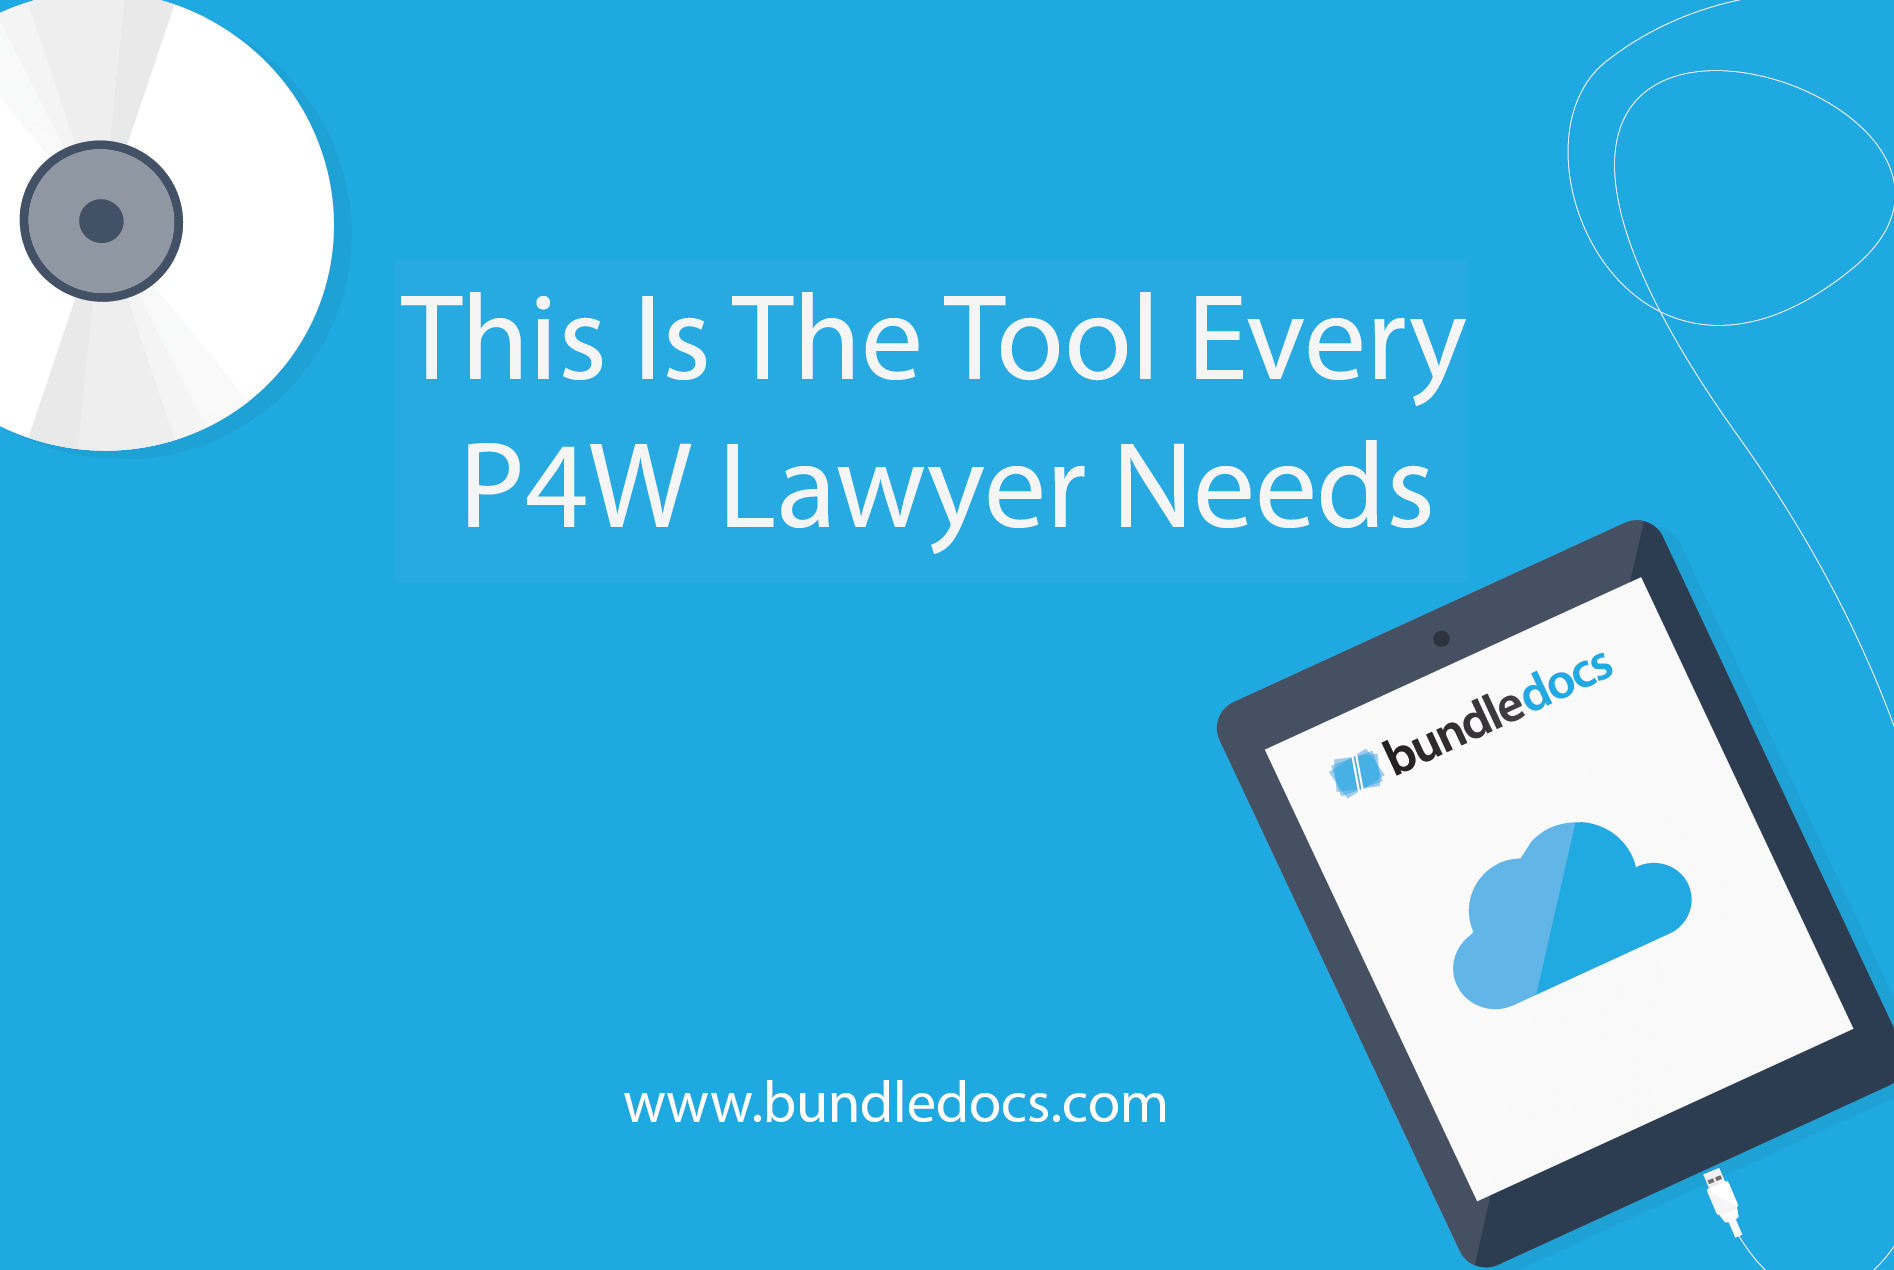 This_is_the_tool_every_P4W_lawyer_needs_Bundledocs.png